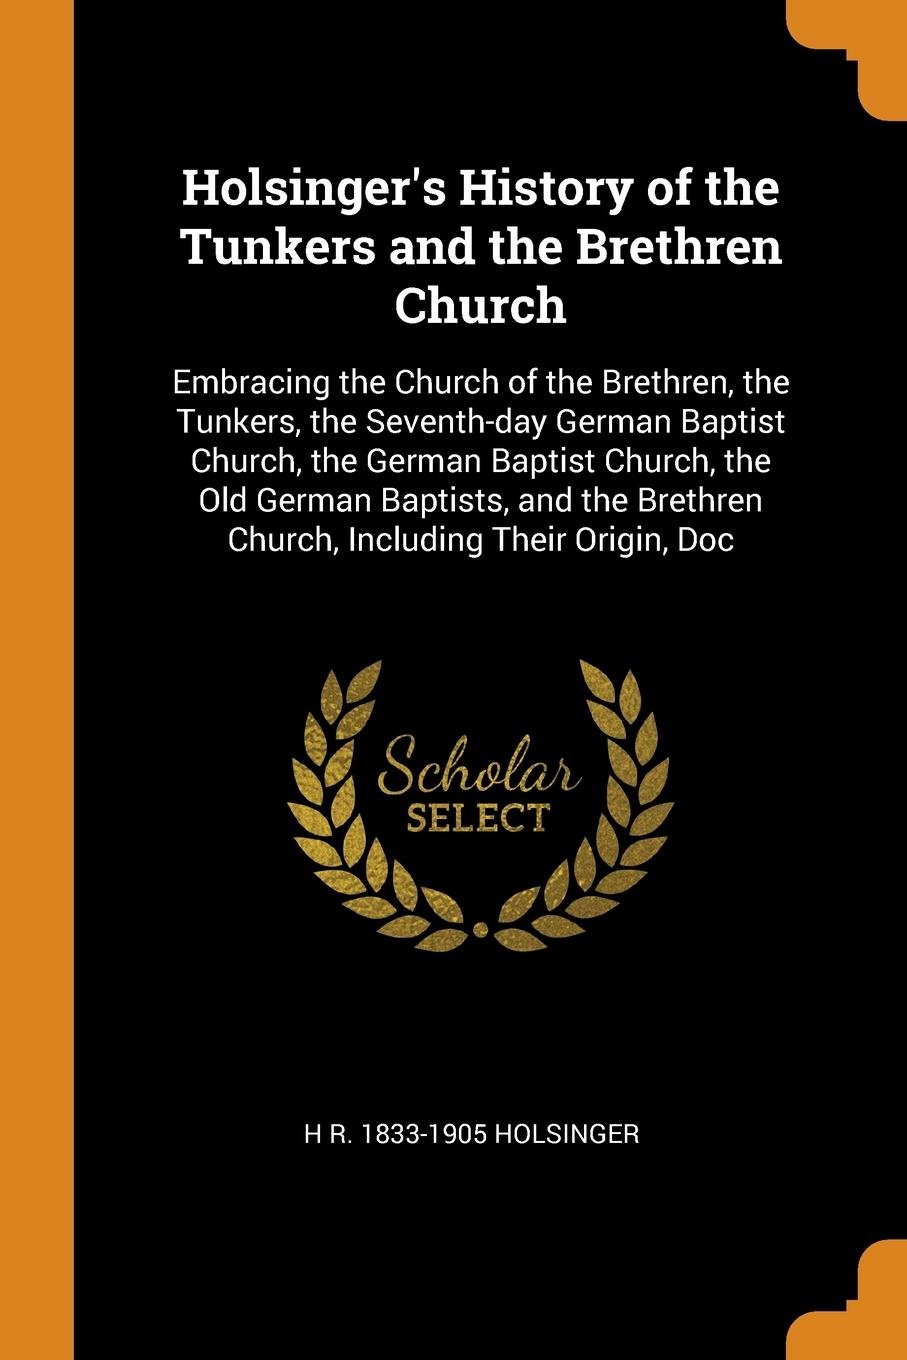 Фото - H R. 1833-1905 Holsinger Holsinger's History of the Tunkers and the Brethren Church. Embracing the Church of the Brethren, the Tunkers, the Seventh-day German Baptist Church, the German Baptist Church, the Old German Baptists, and the Brethren Church, Including Their Orig... julian roderick felix jones and the dawn of the brethren